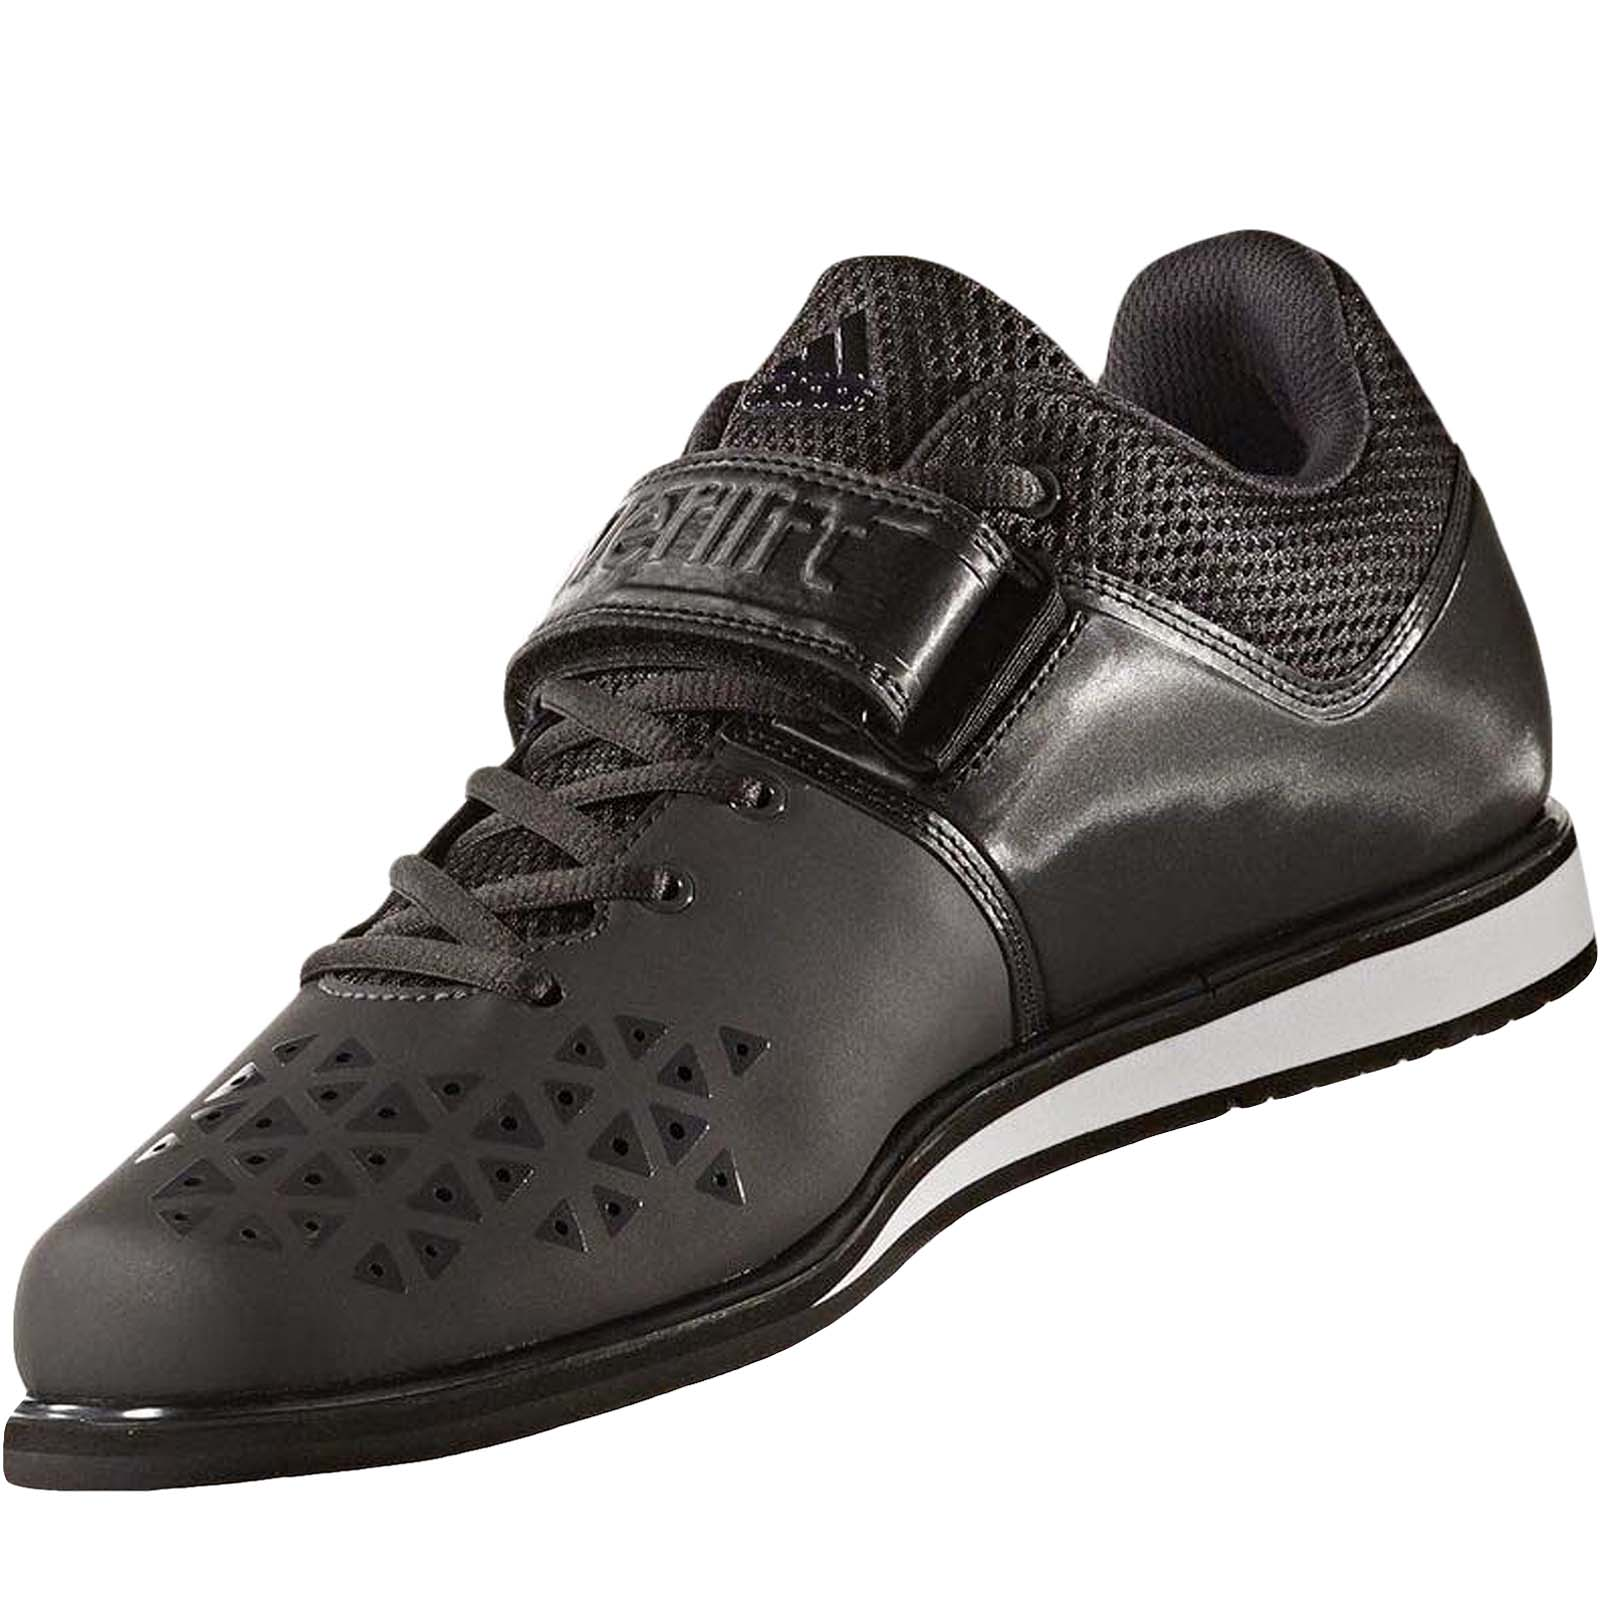 adidas-Performance-Mens-Powerlift-3-1-Weightlifting-Training-Trainers-Shoes thumbnail 6